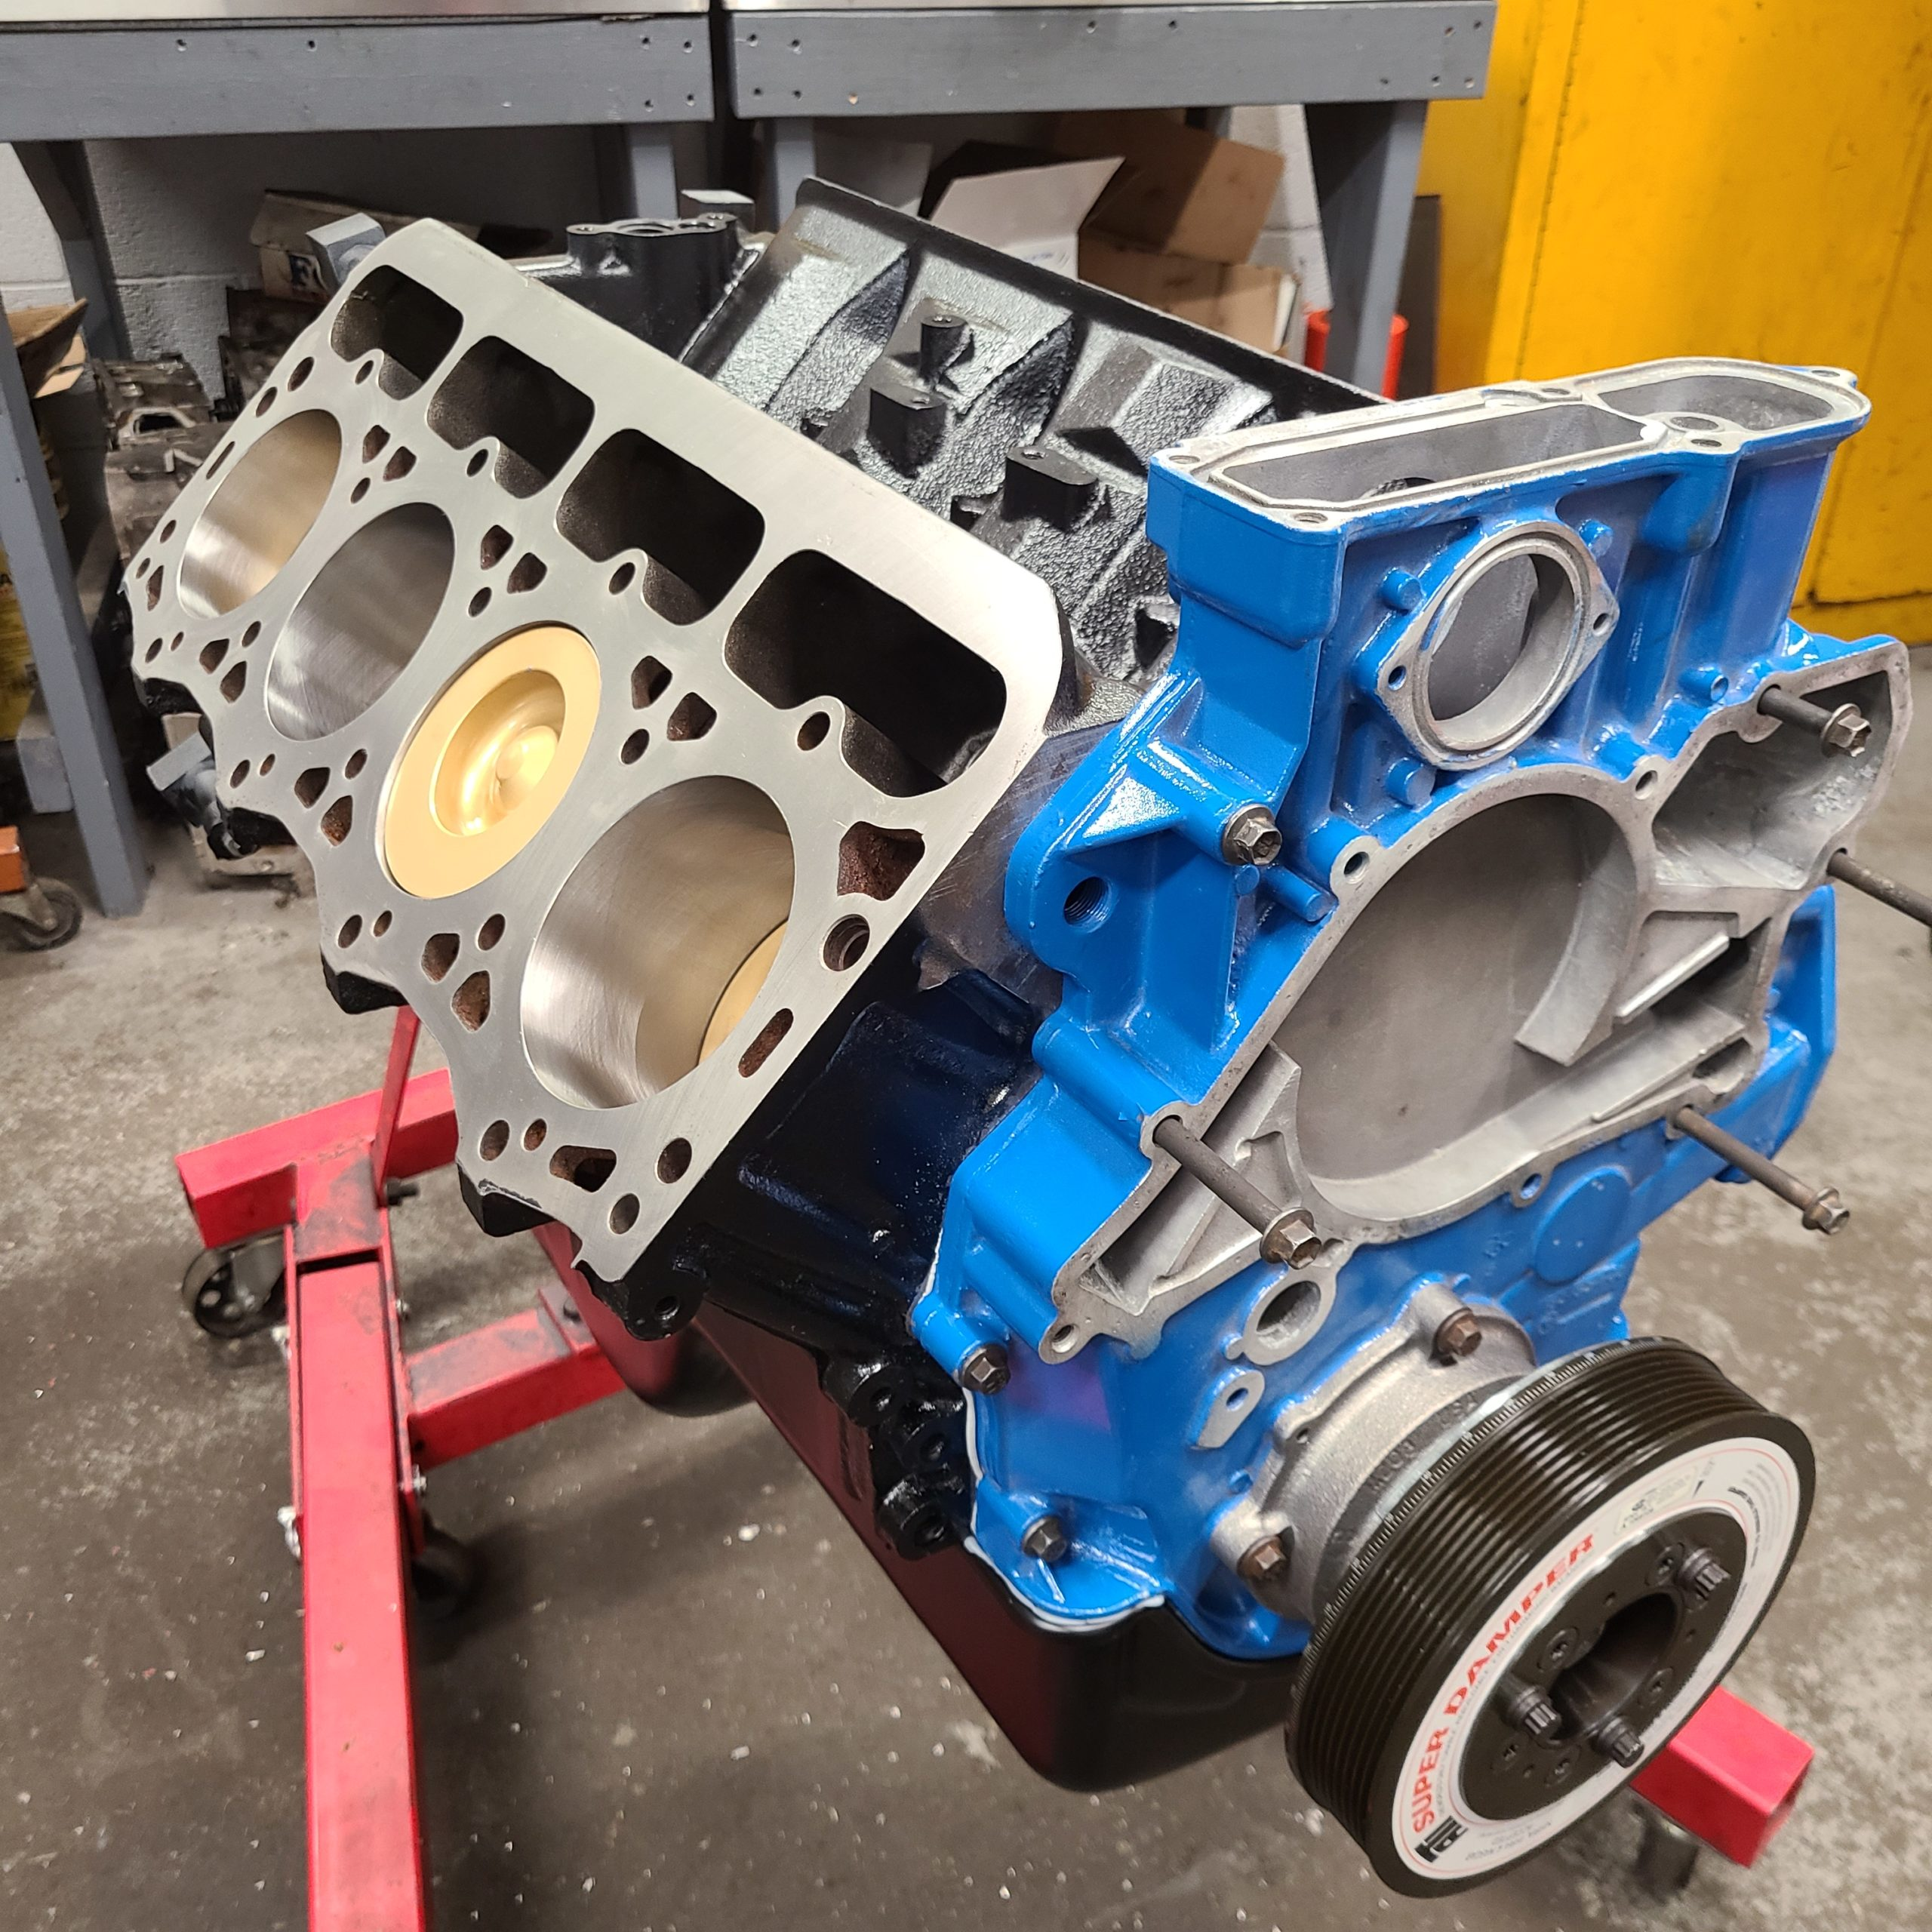 Problems With 7.3 Powerstroke Engines